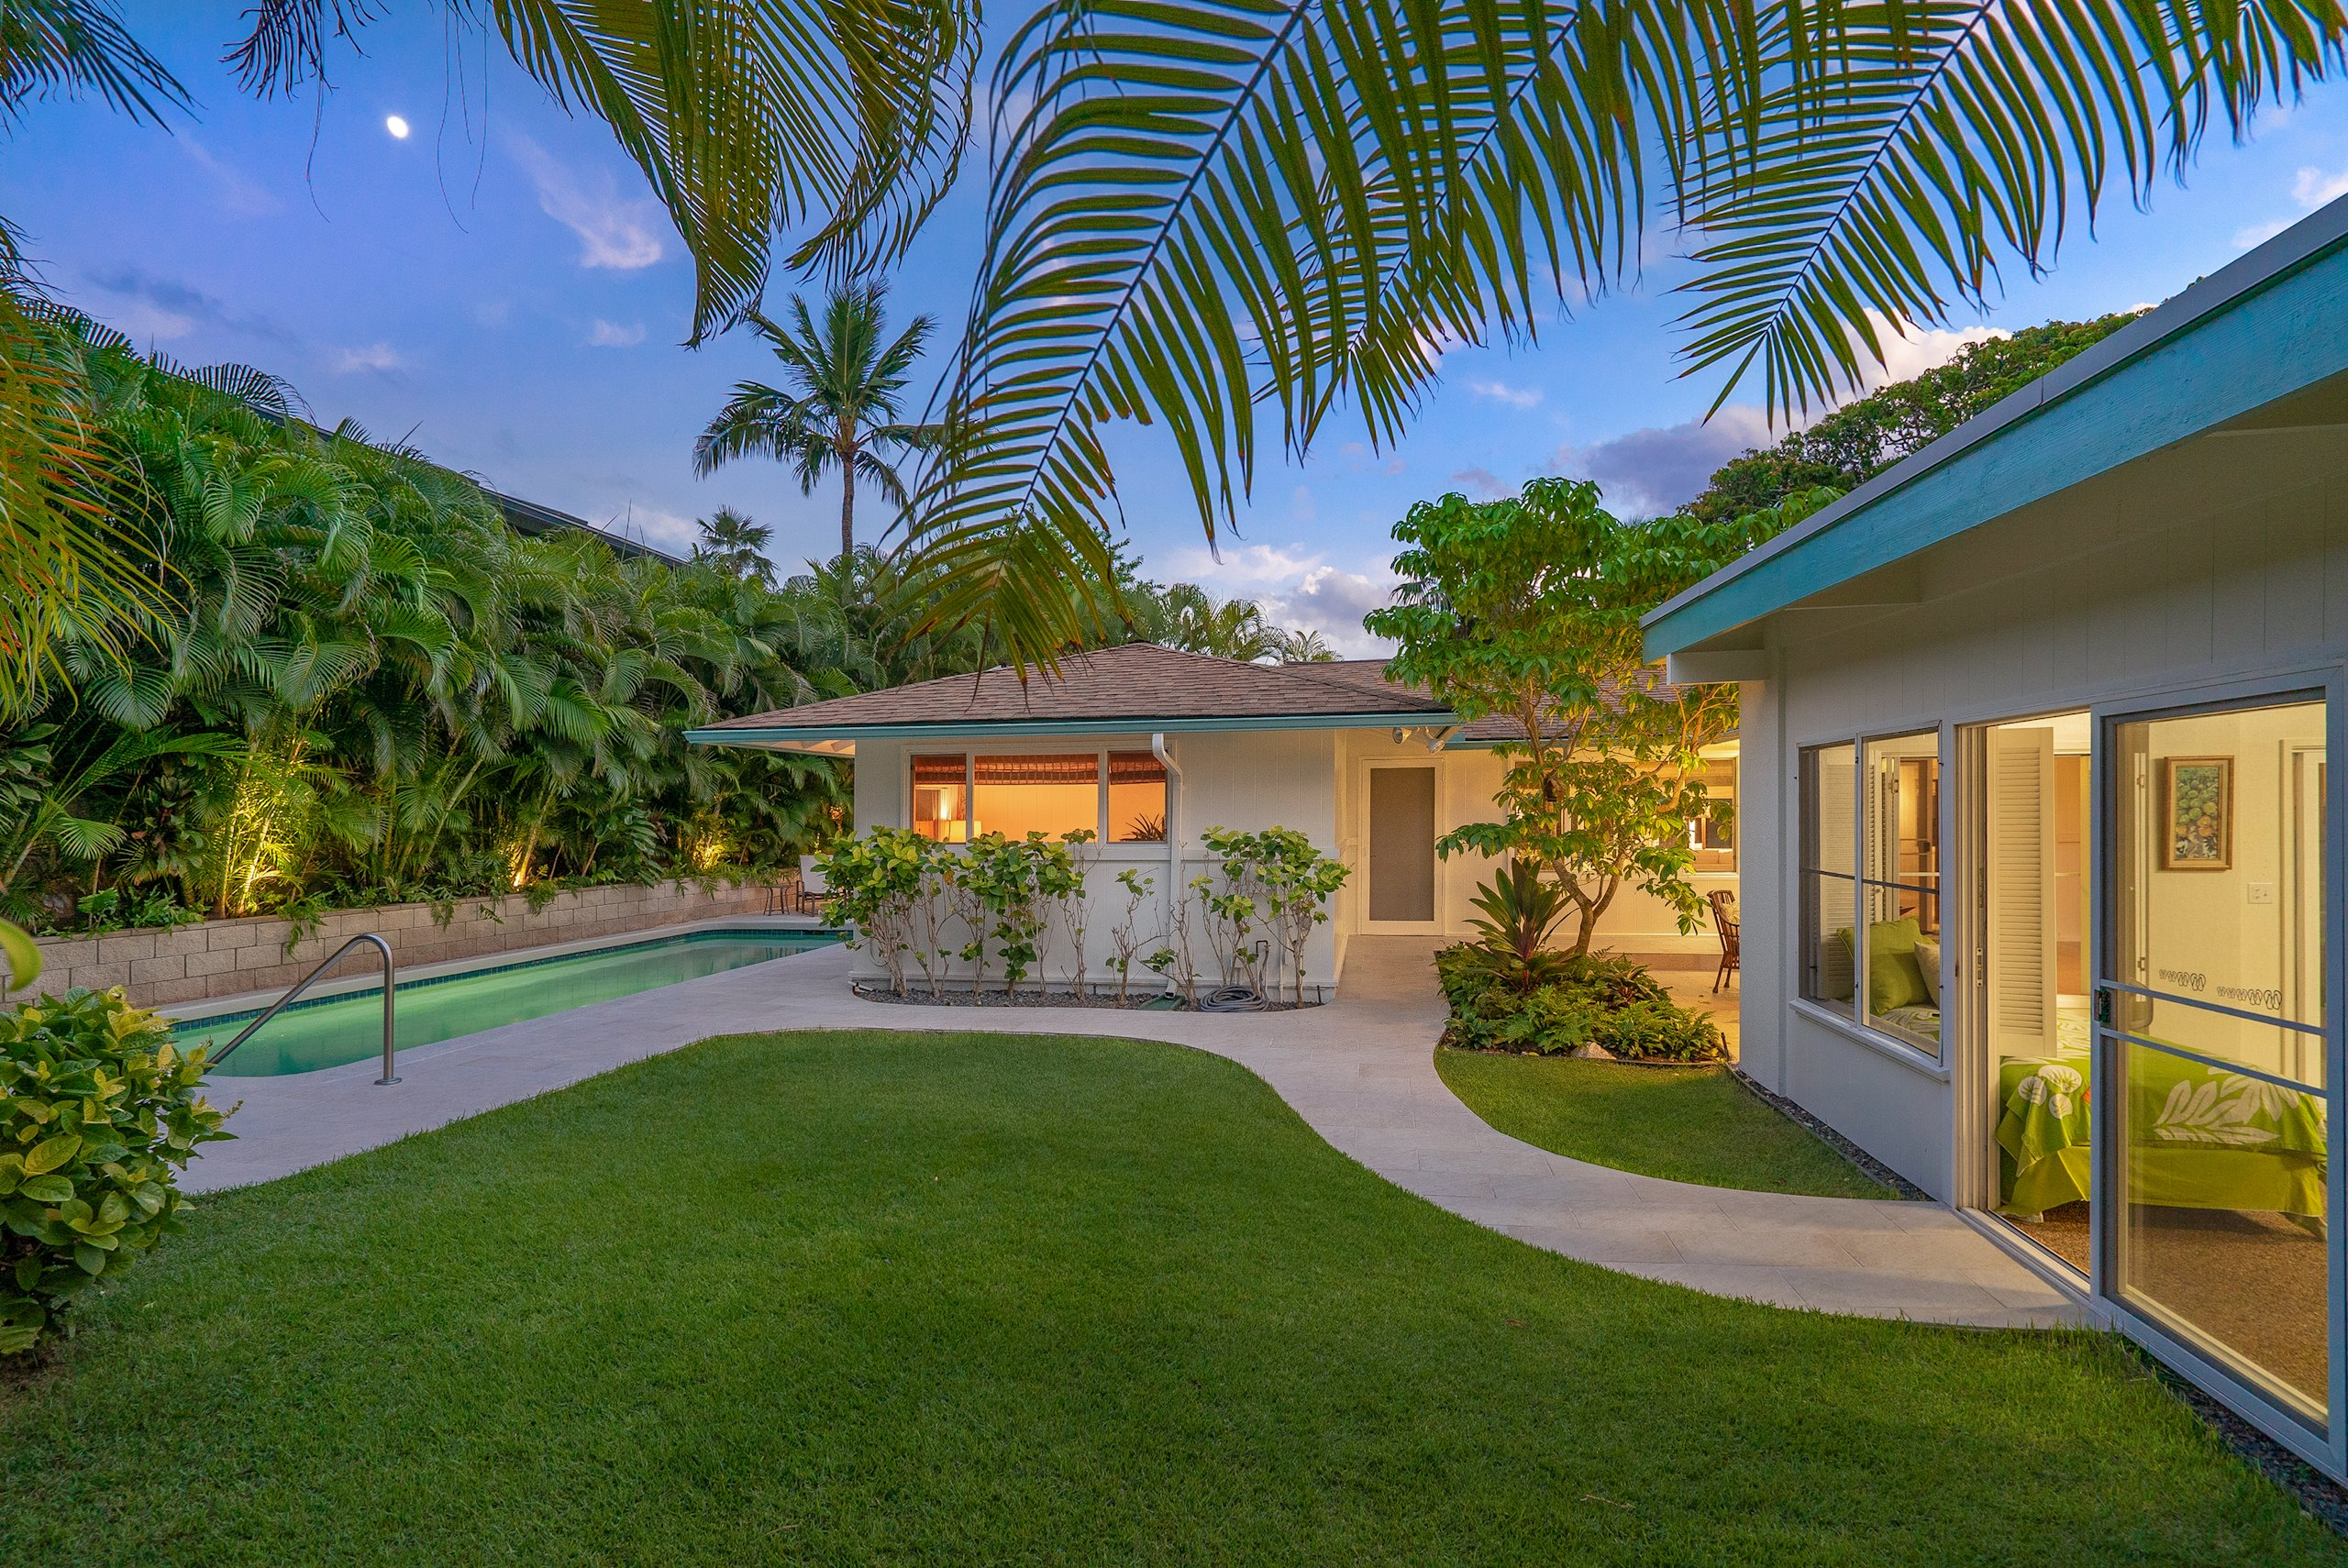 This Kailua Hale, one block from the beach,  was expertly designed by Honolulu architect Robert Alexander Lazo and renovated in 2000. The home has ample gathering spaces to entertain and the level lot is set back with lush landscaping that maximizes privacy while you enjoy the pool house and spa. Thoughtful elements of this single-level home, like a walk-in master shower and a ramp to the pool, accommodate aging-in-place. Stay comfortable year-round with central and split system A/C offset by leased PV panels and solar hot water. This address affords the opportunity to join the private Kalama Beach Club one block away. See the tour at http://player.vimeo.com/video/373016154. Open House Sunday, December 8th from 2:00 p.m. to 4:00 p.m.